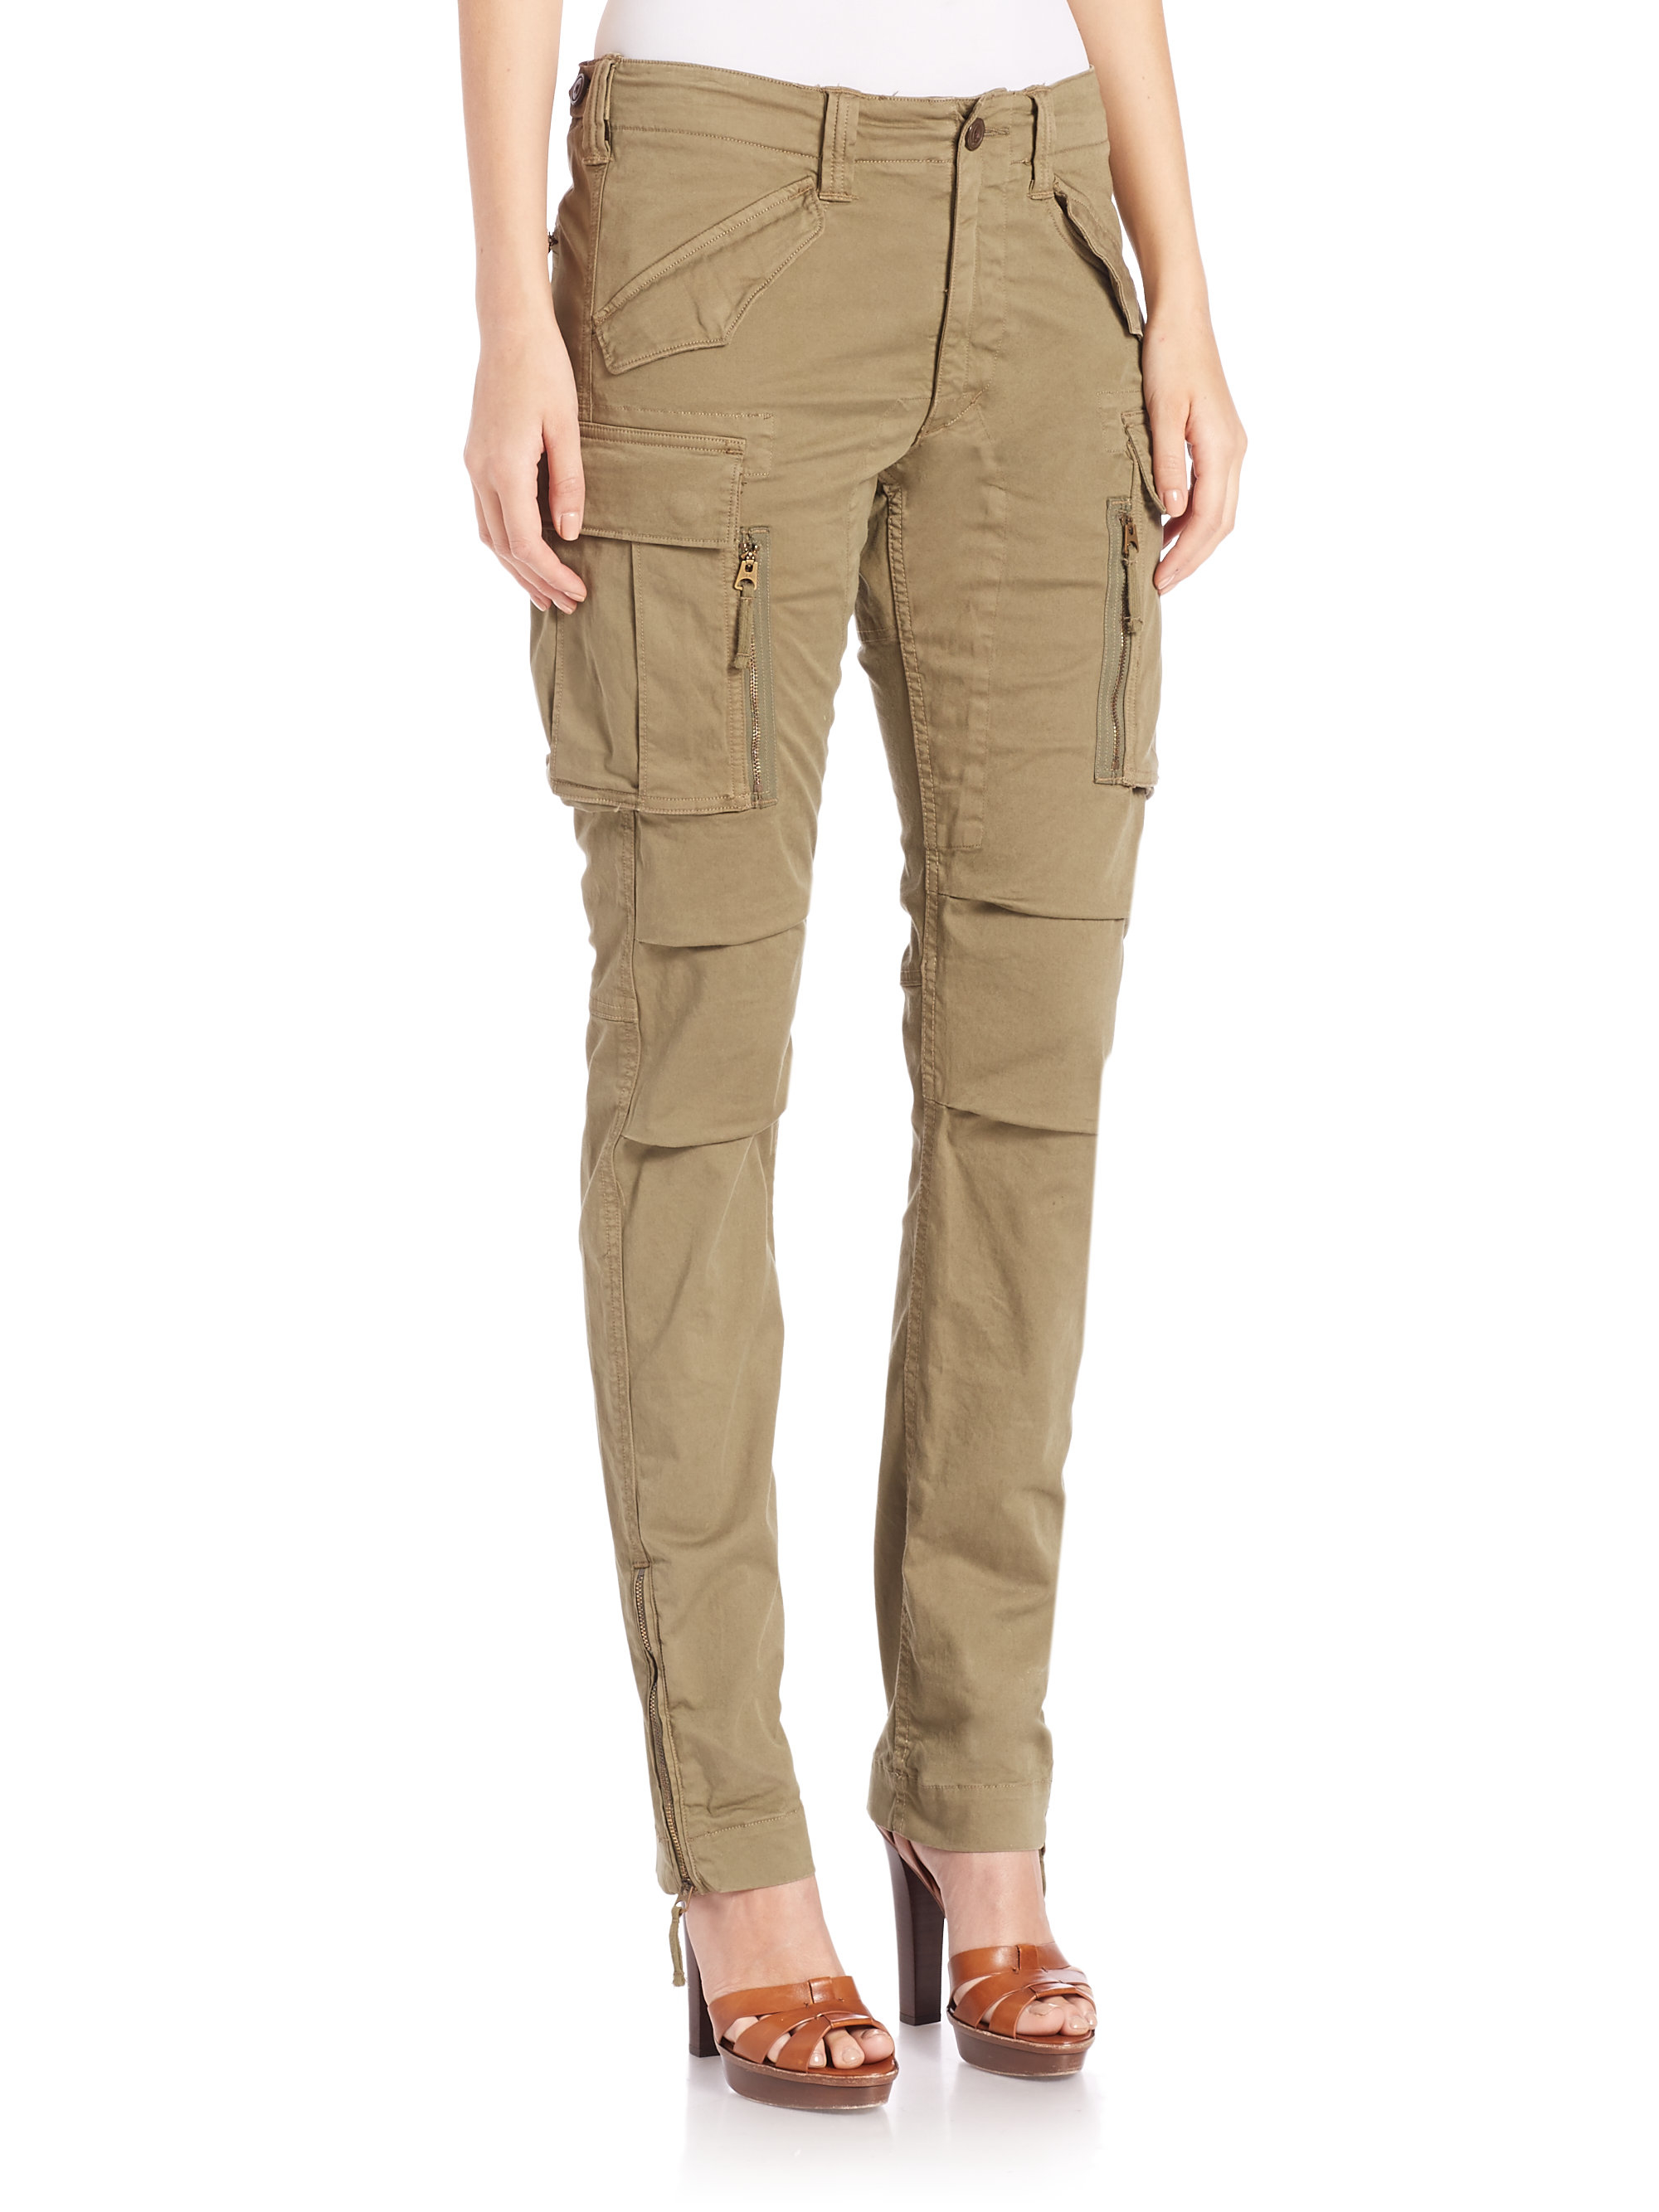 Polo ralph lauren Twill Cargo Skinny Pants in Green | Lyst